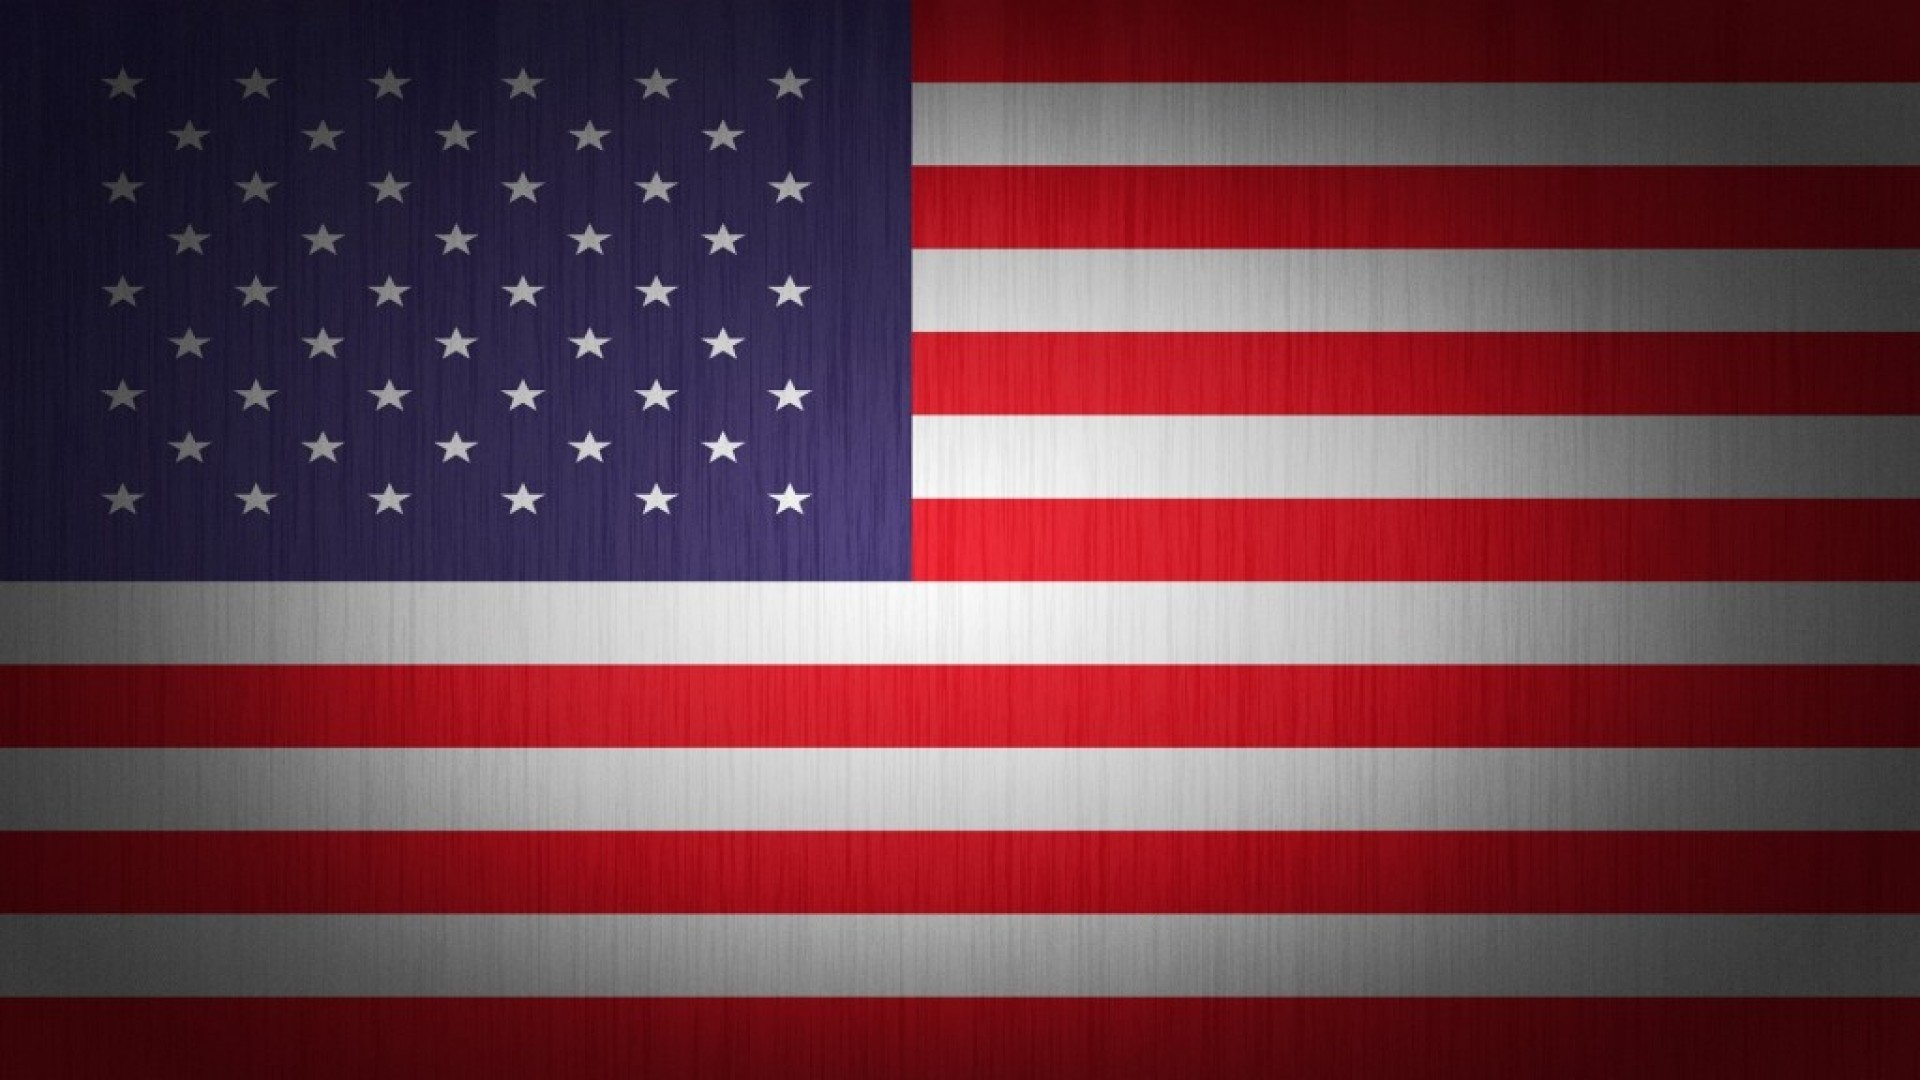 1920x1080 American Flag American Flag Background